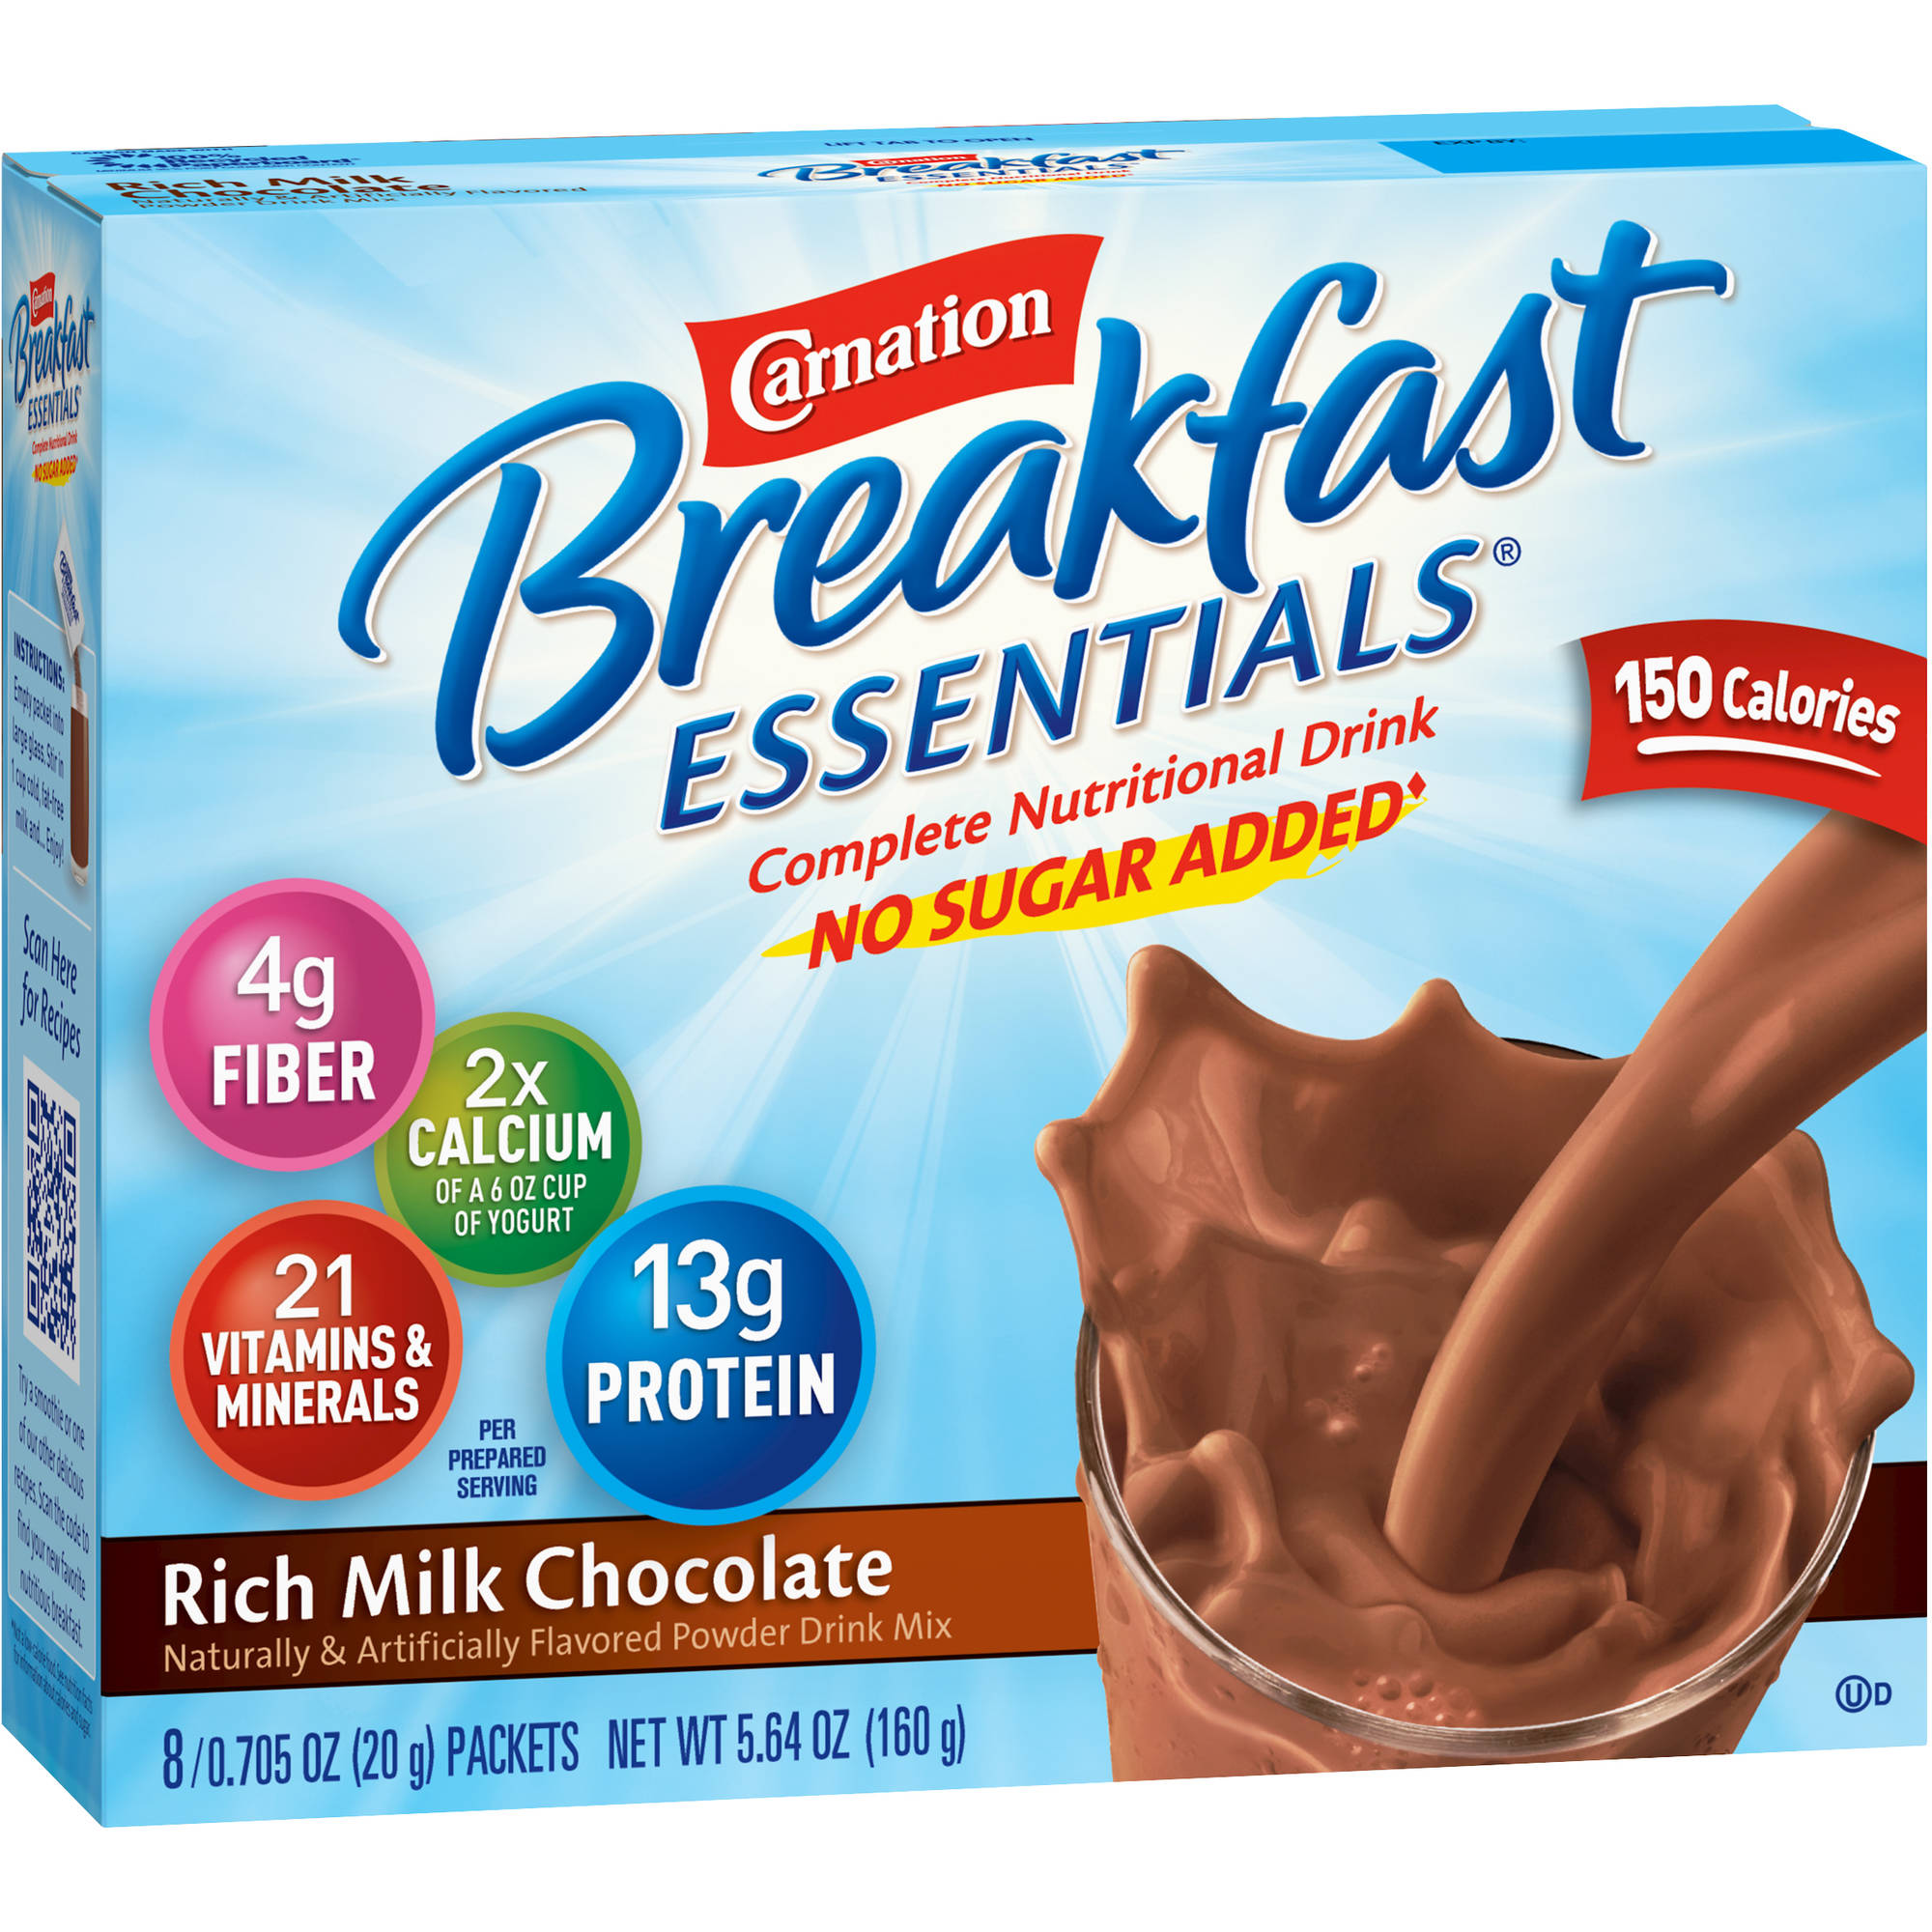 Carnation Breakfast Essentials® No Sugar Added Rich Milk Chocolate Complete Nutritional Drink Mix, 0.705 oz, 8 count